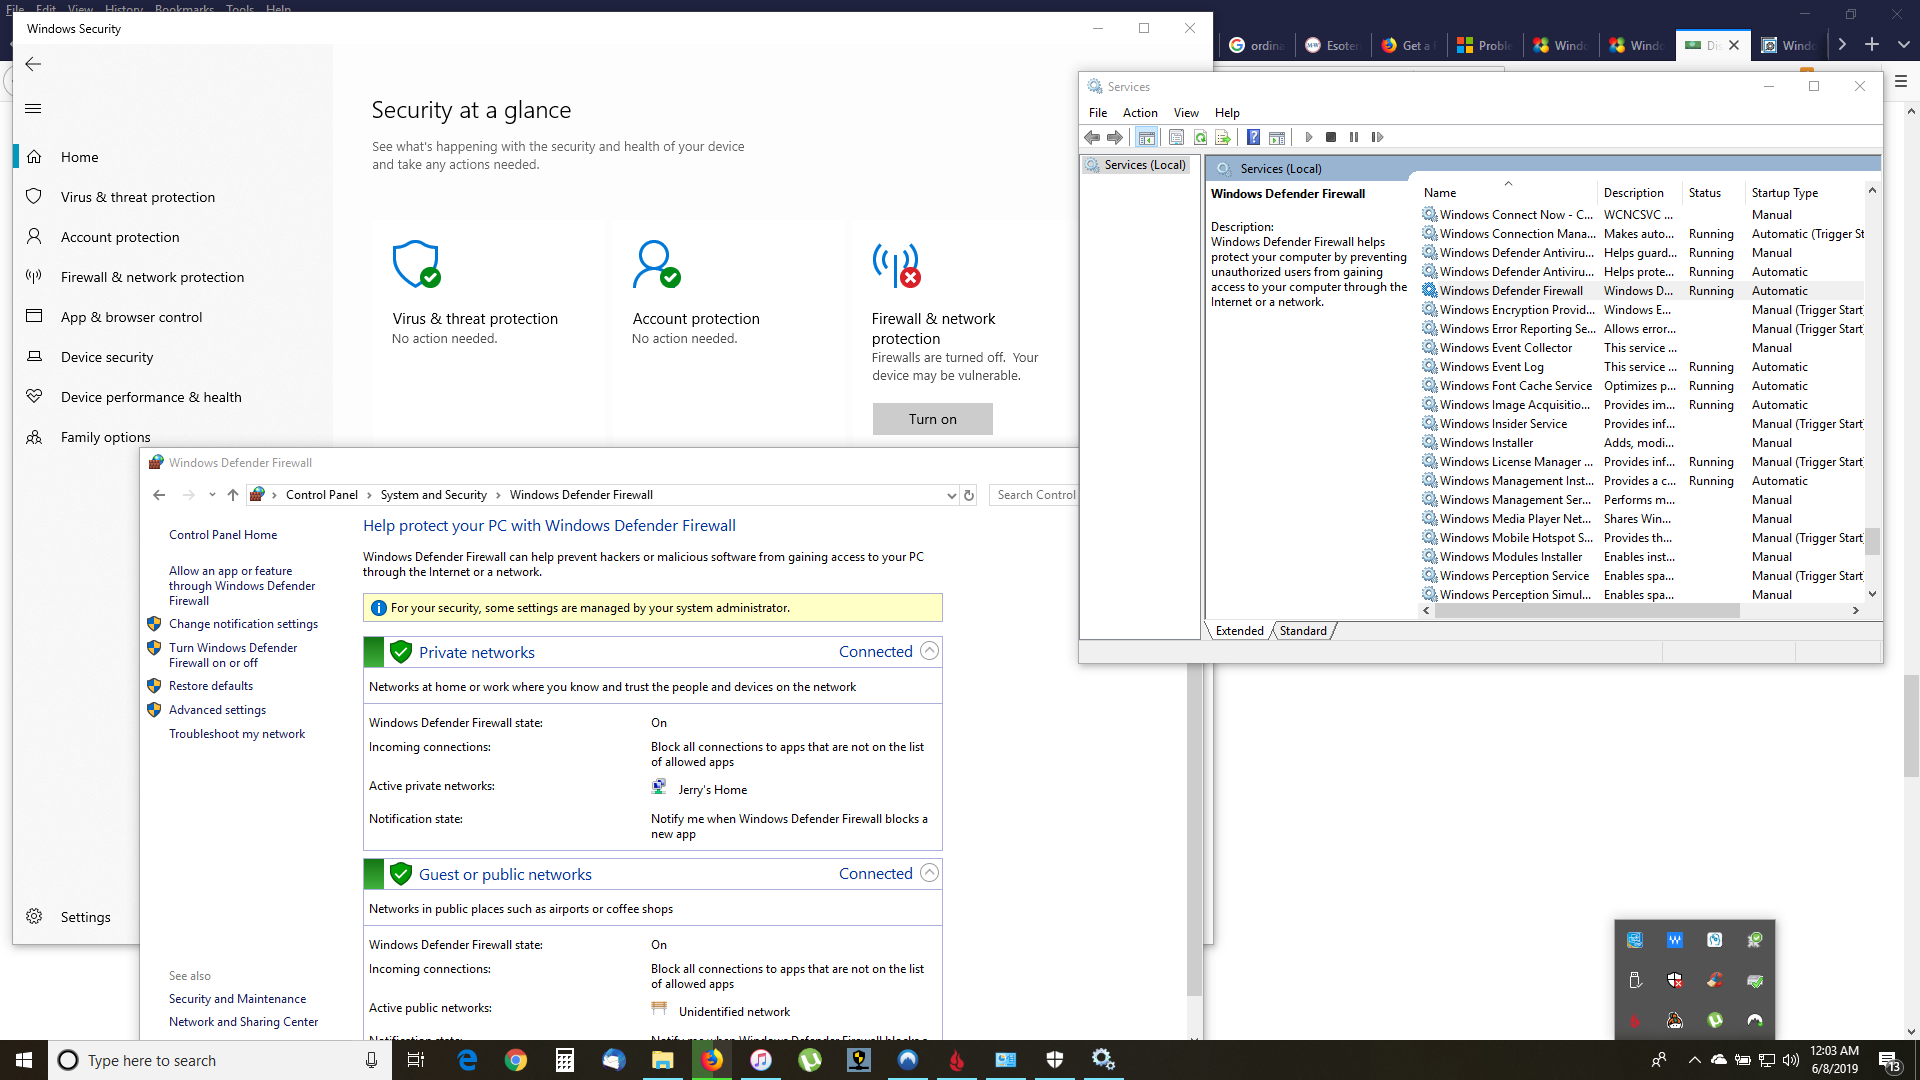 Windows Defender Firewall showing On and Off at the same time e680c526-7767-4e67-8ca4-77e0716cc60d?upload=true.png